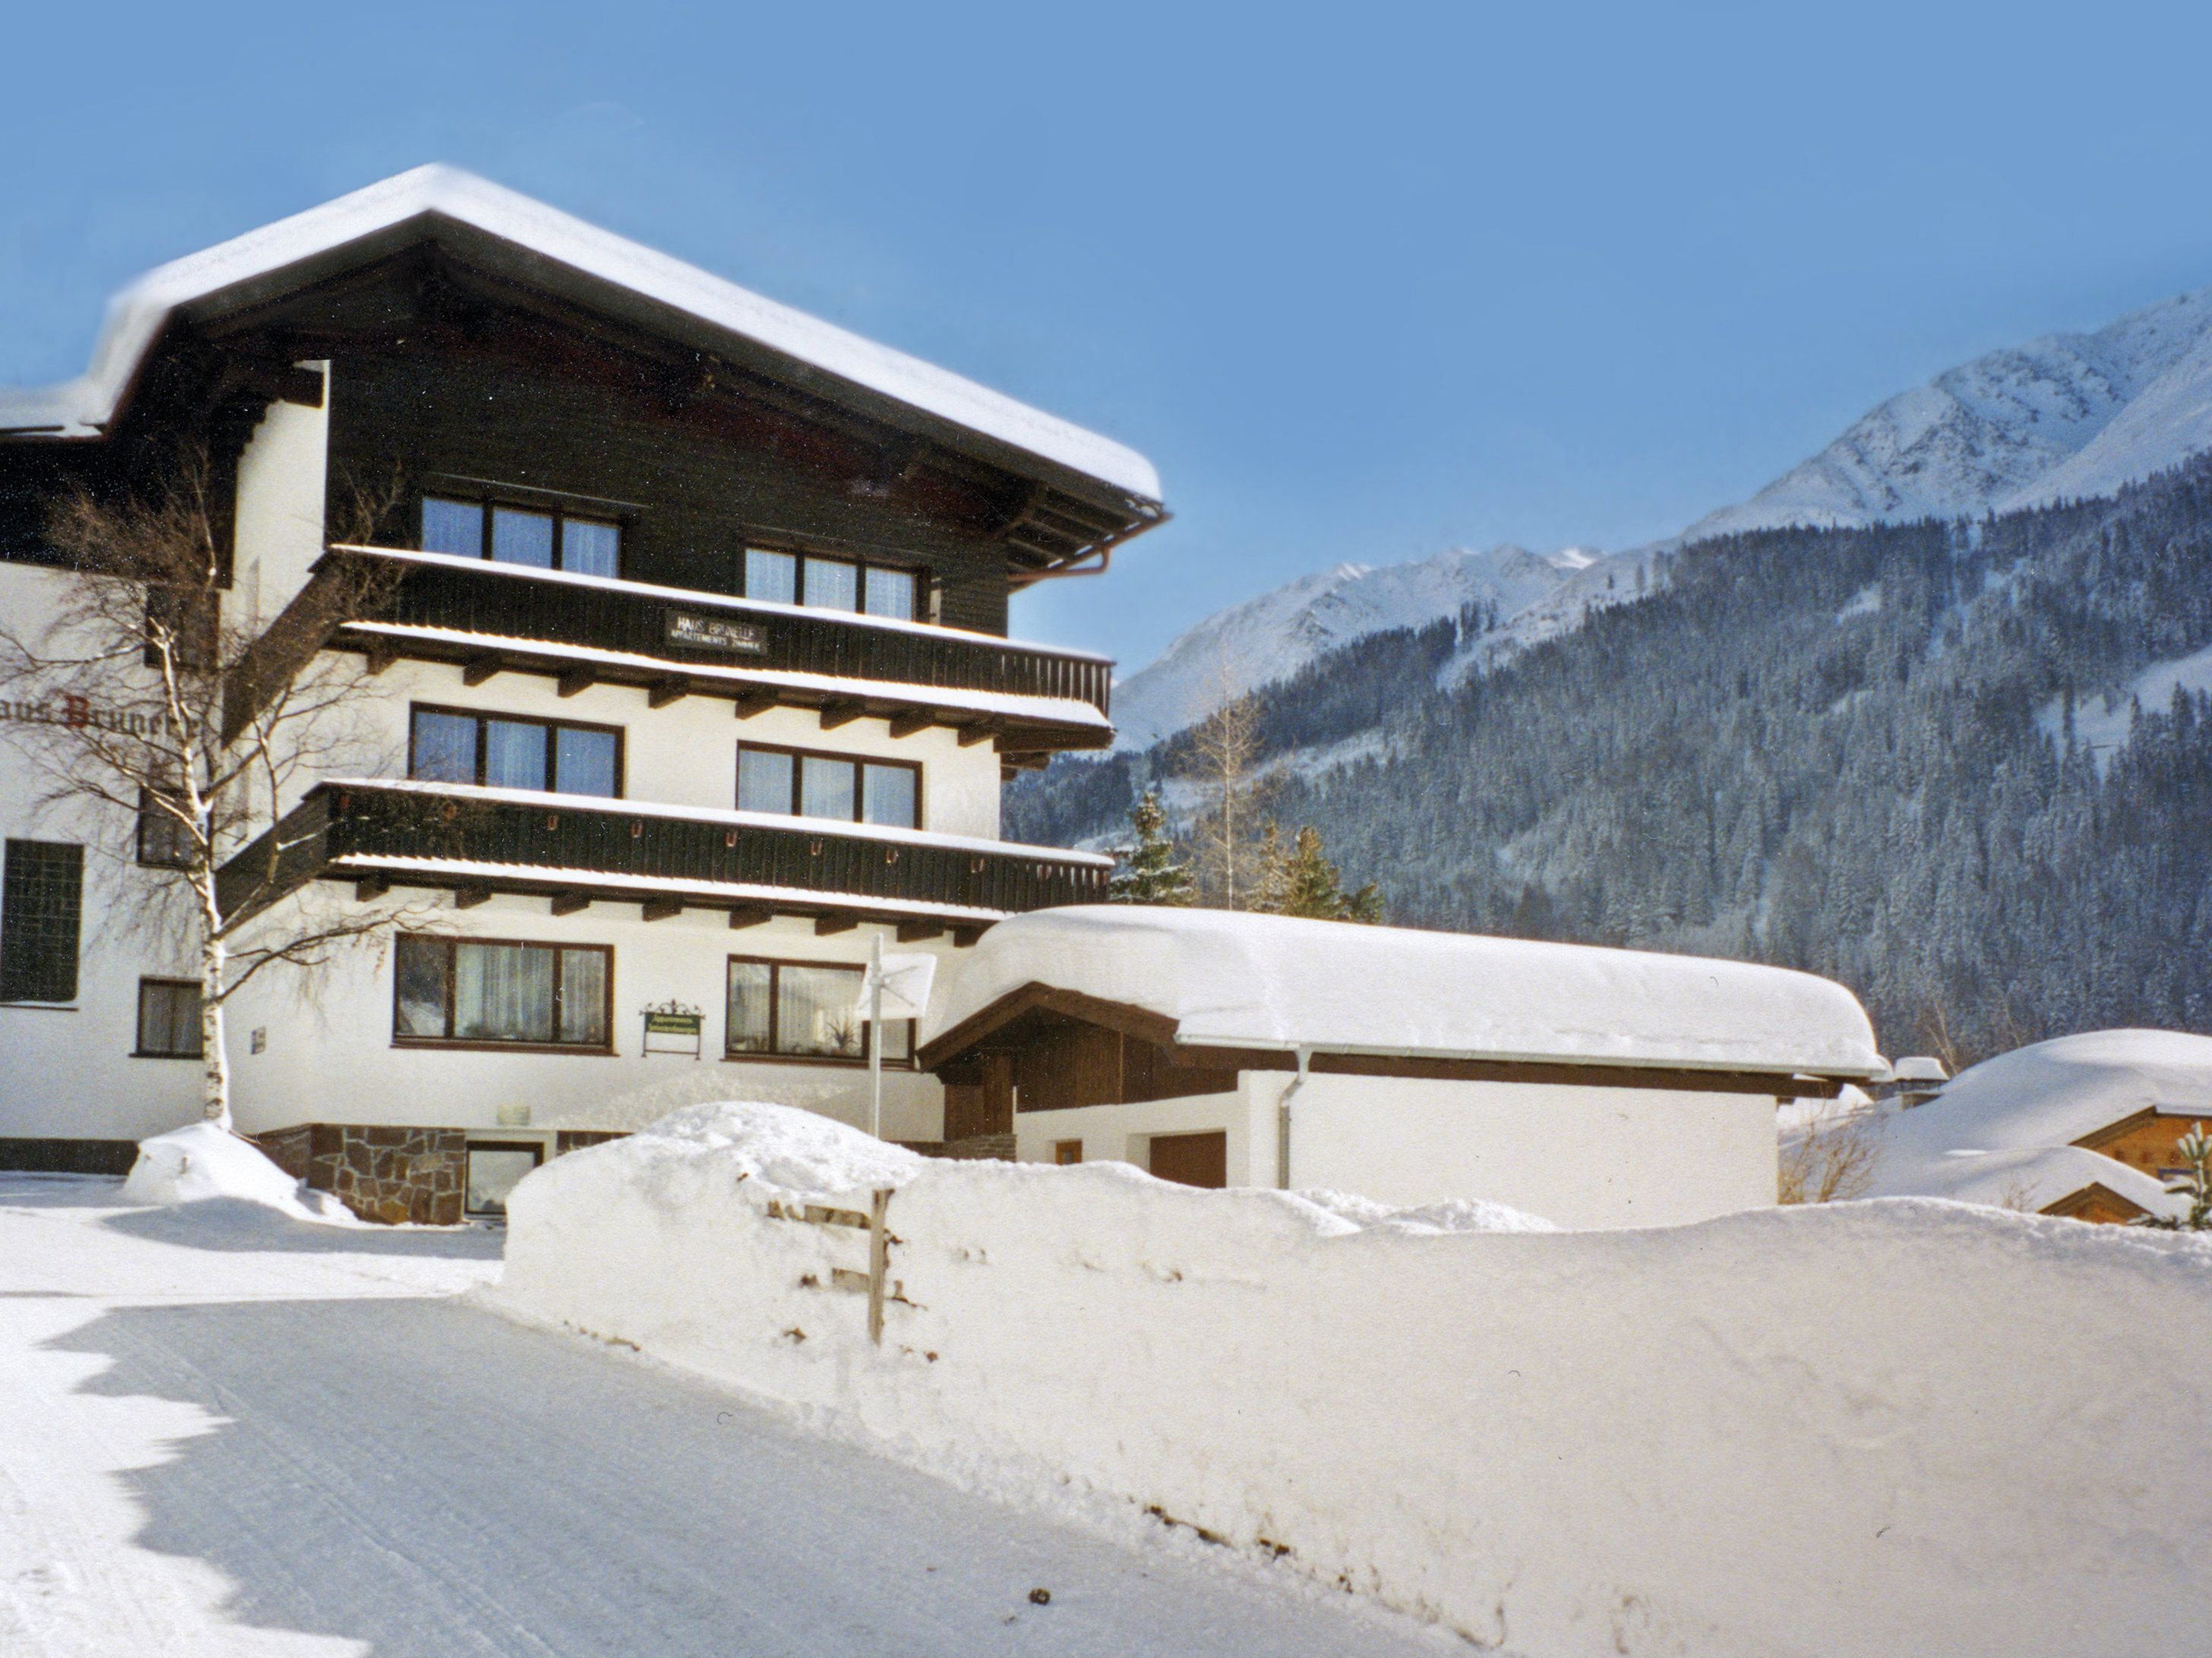 Chalet st Anton am Arlberg - Chalet Brunelle inclusief catering